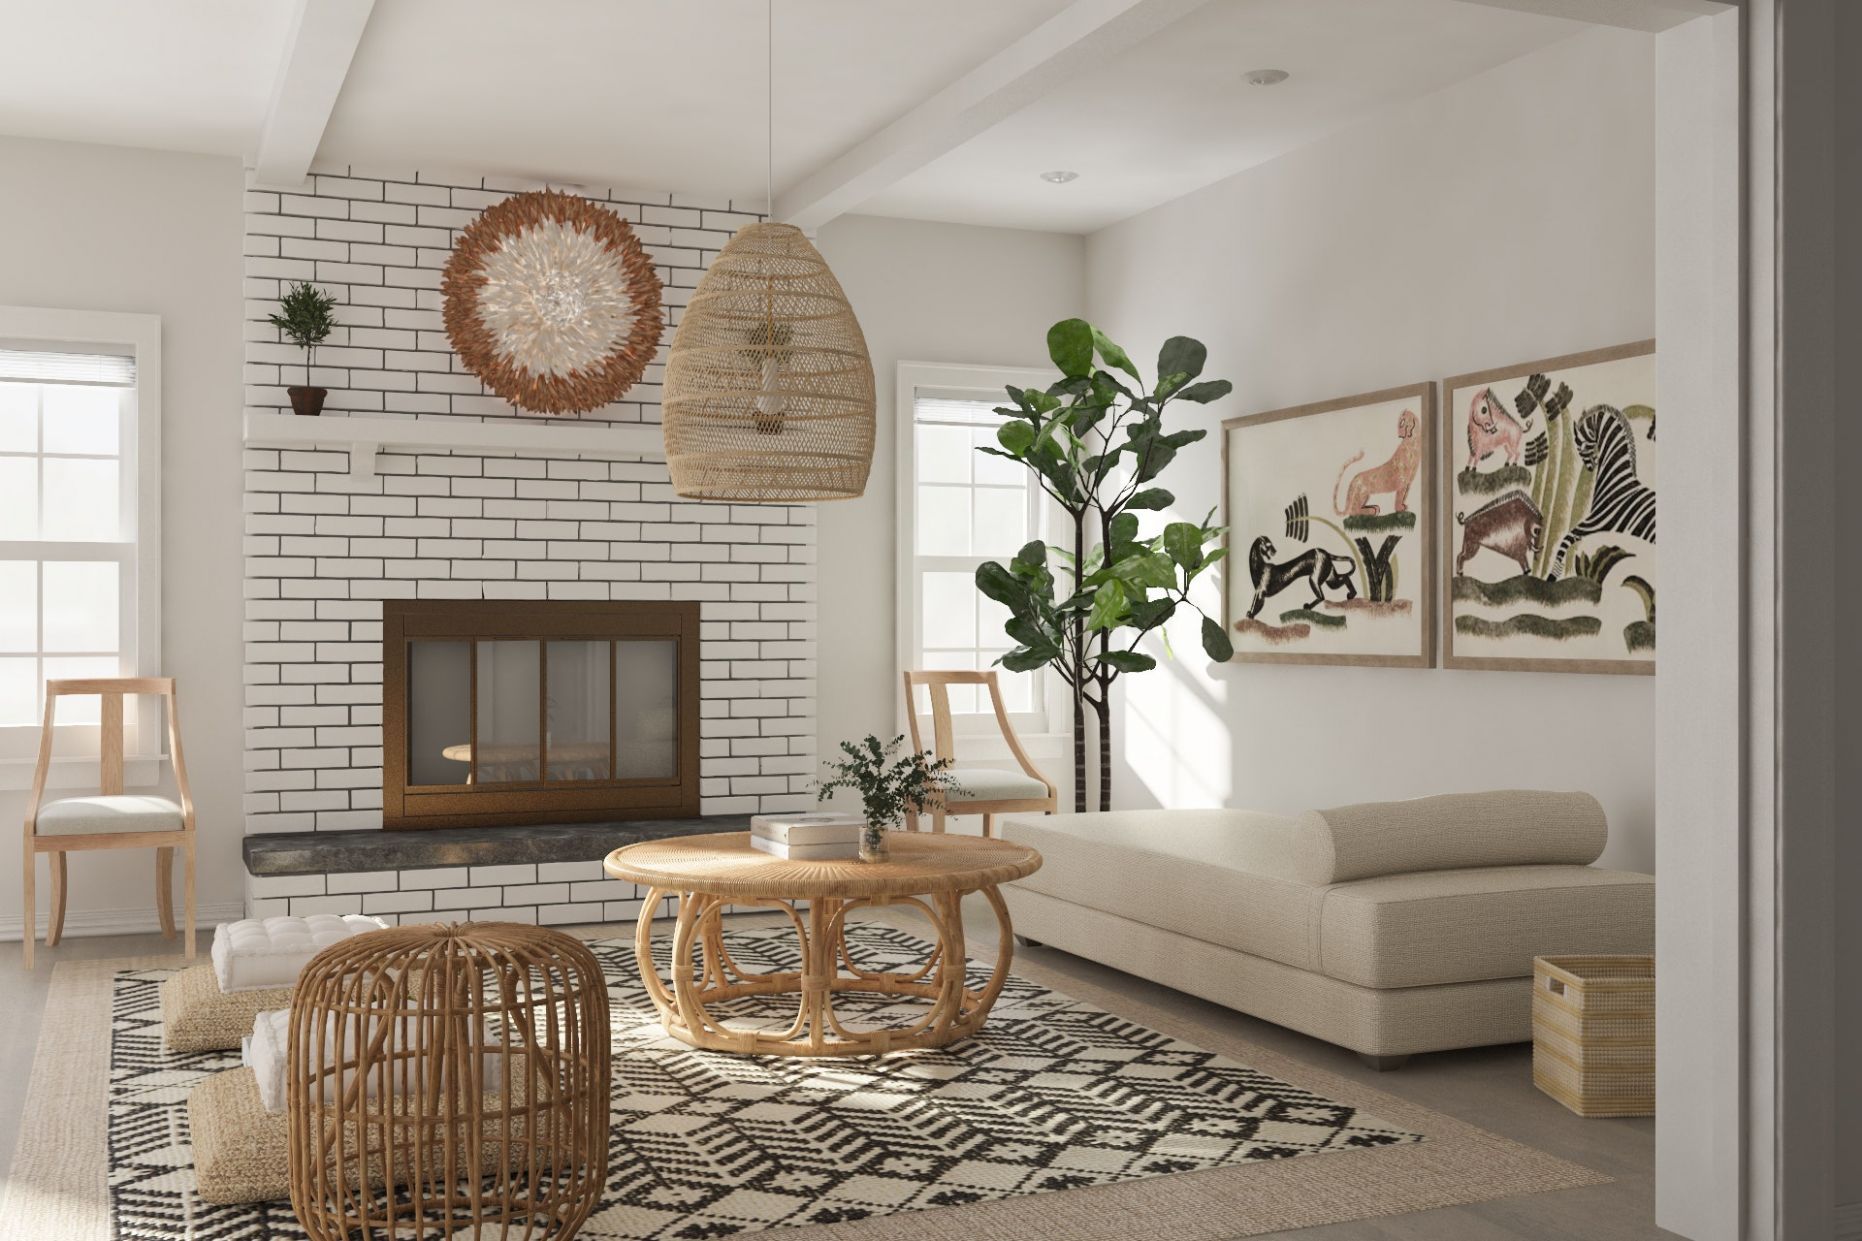 How to Design Your Living Room Without a Sofa | Architectural Digest - living room ideas with just chairs